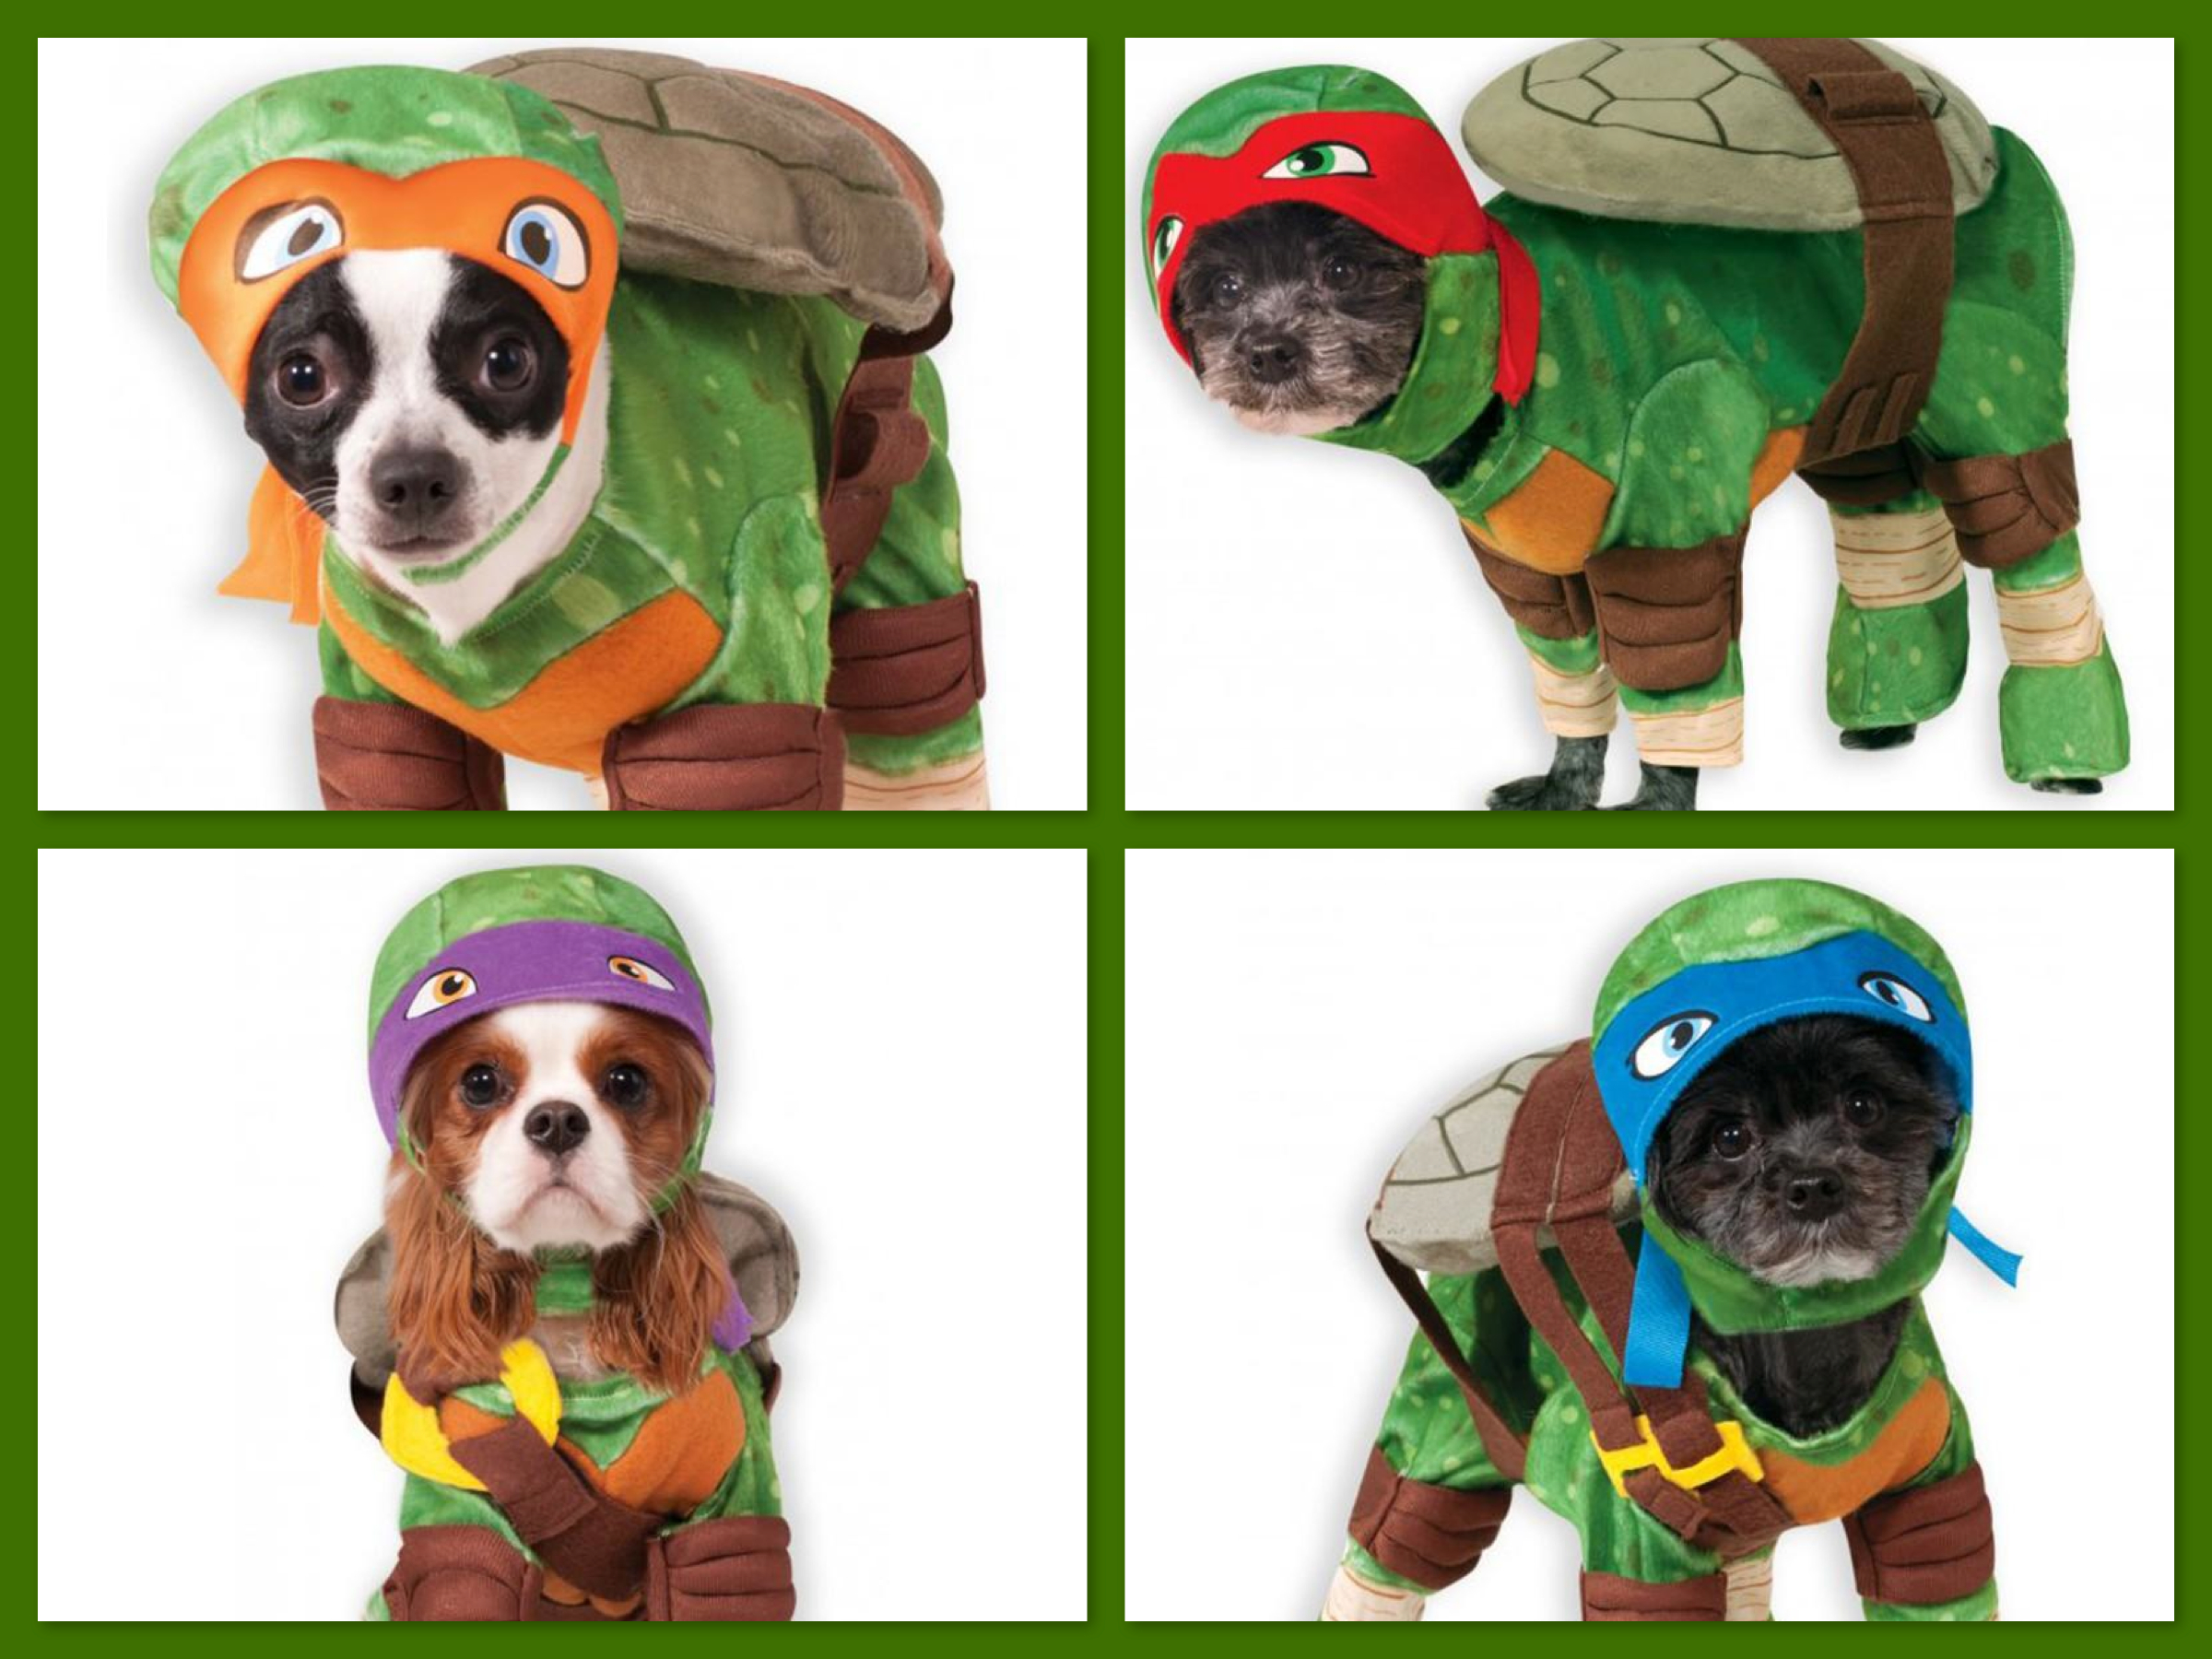 Teenage Mutant Ninja Turtle Pet Costumes, Dog Turtle Halloween Costumes